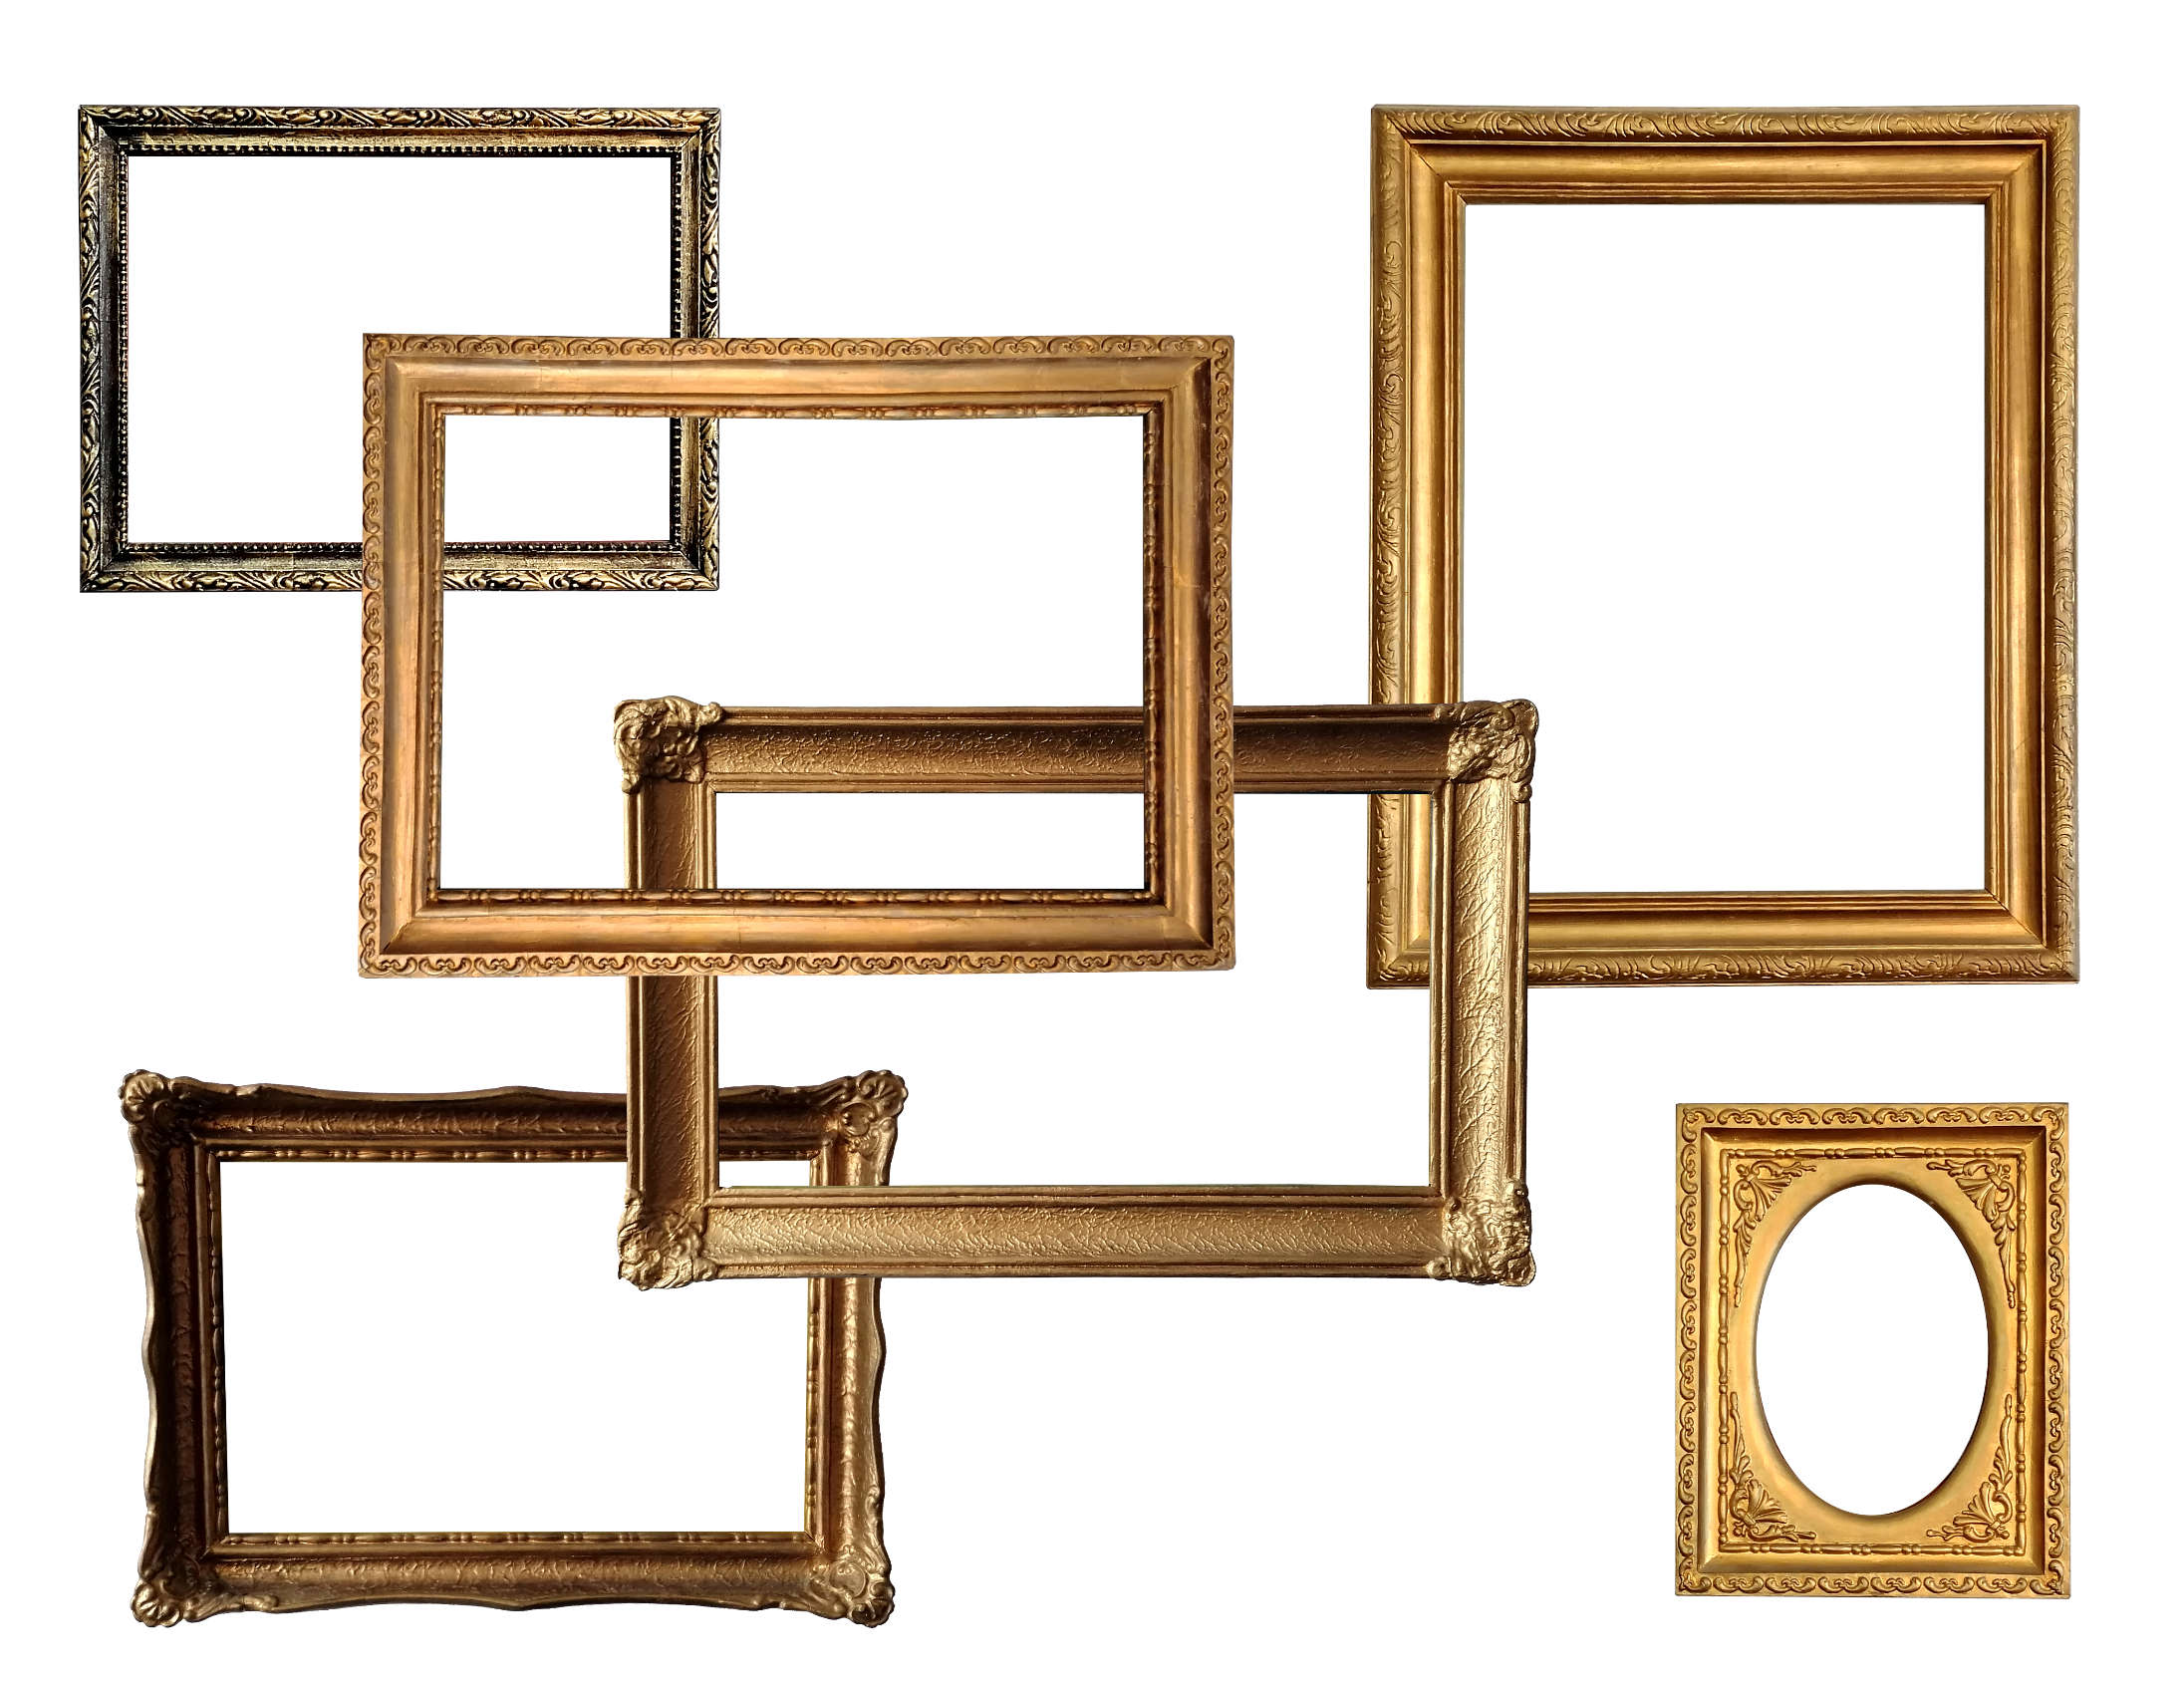 gold-picture-frame-cover.jpg